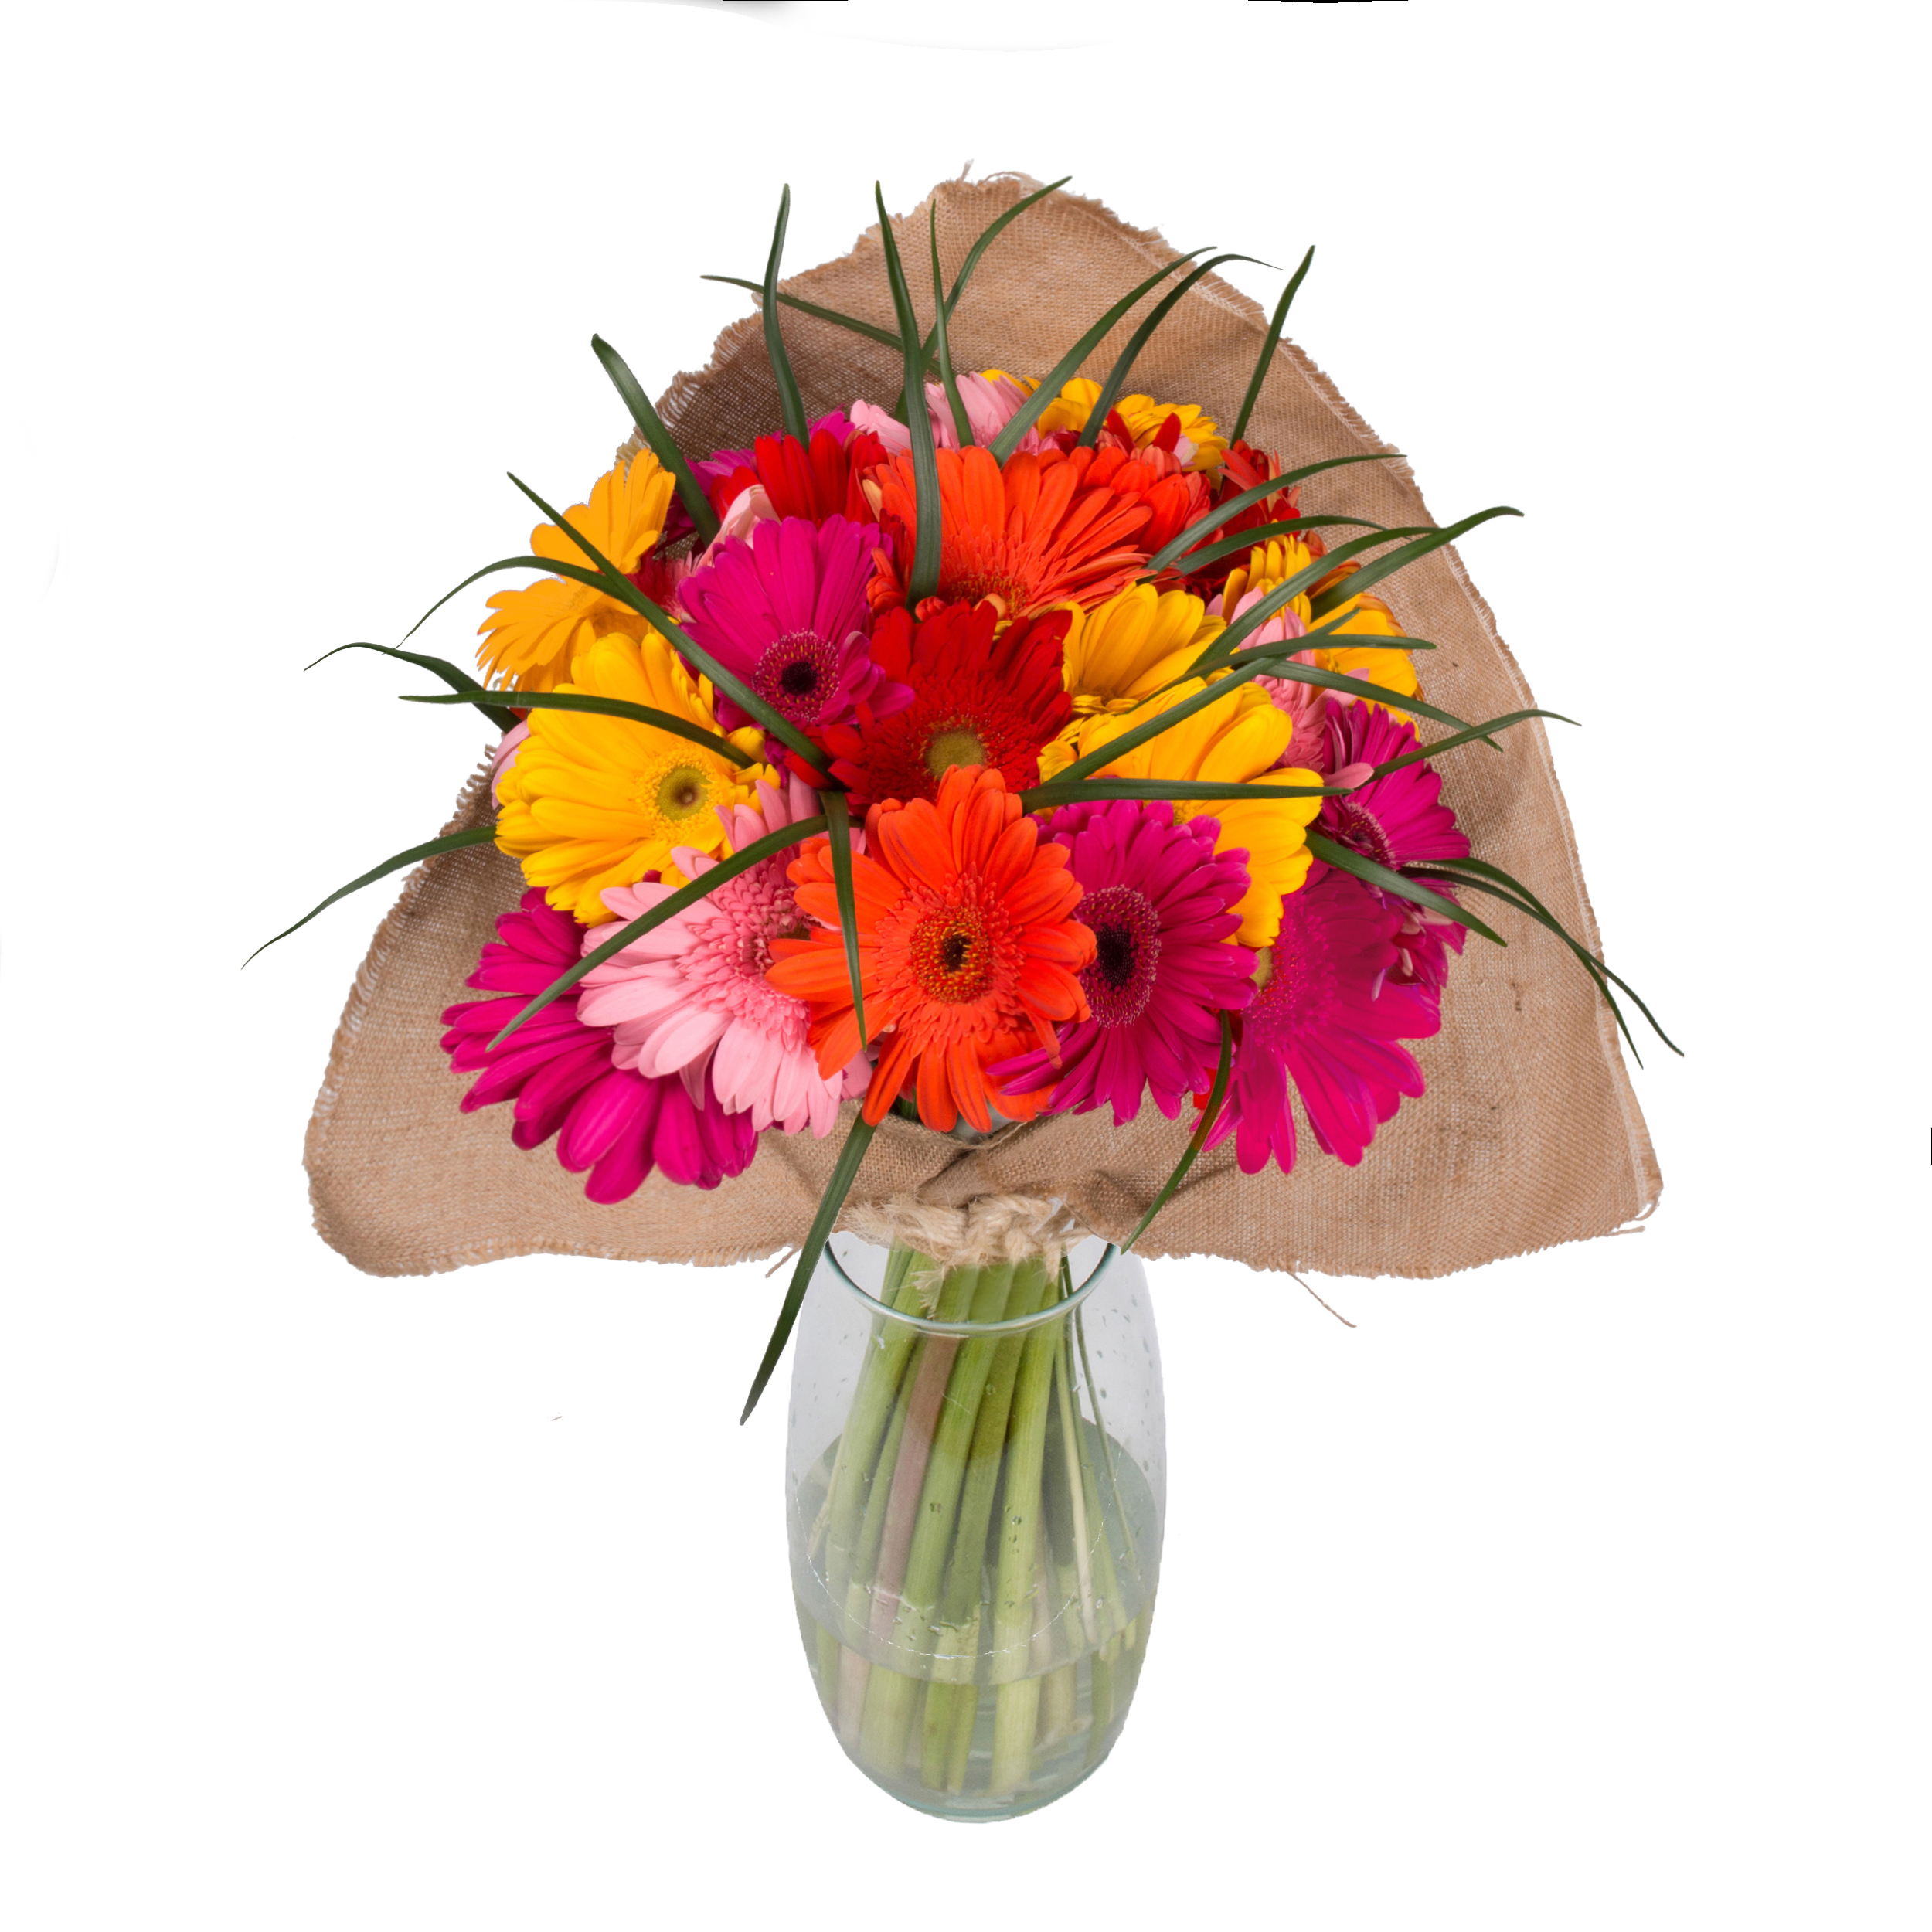 Rainbow Gerbera Bouquet with Burlap - 31 Stems